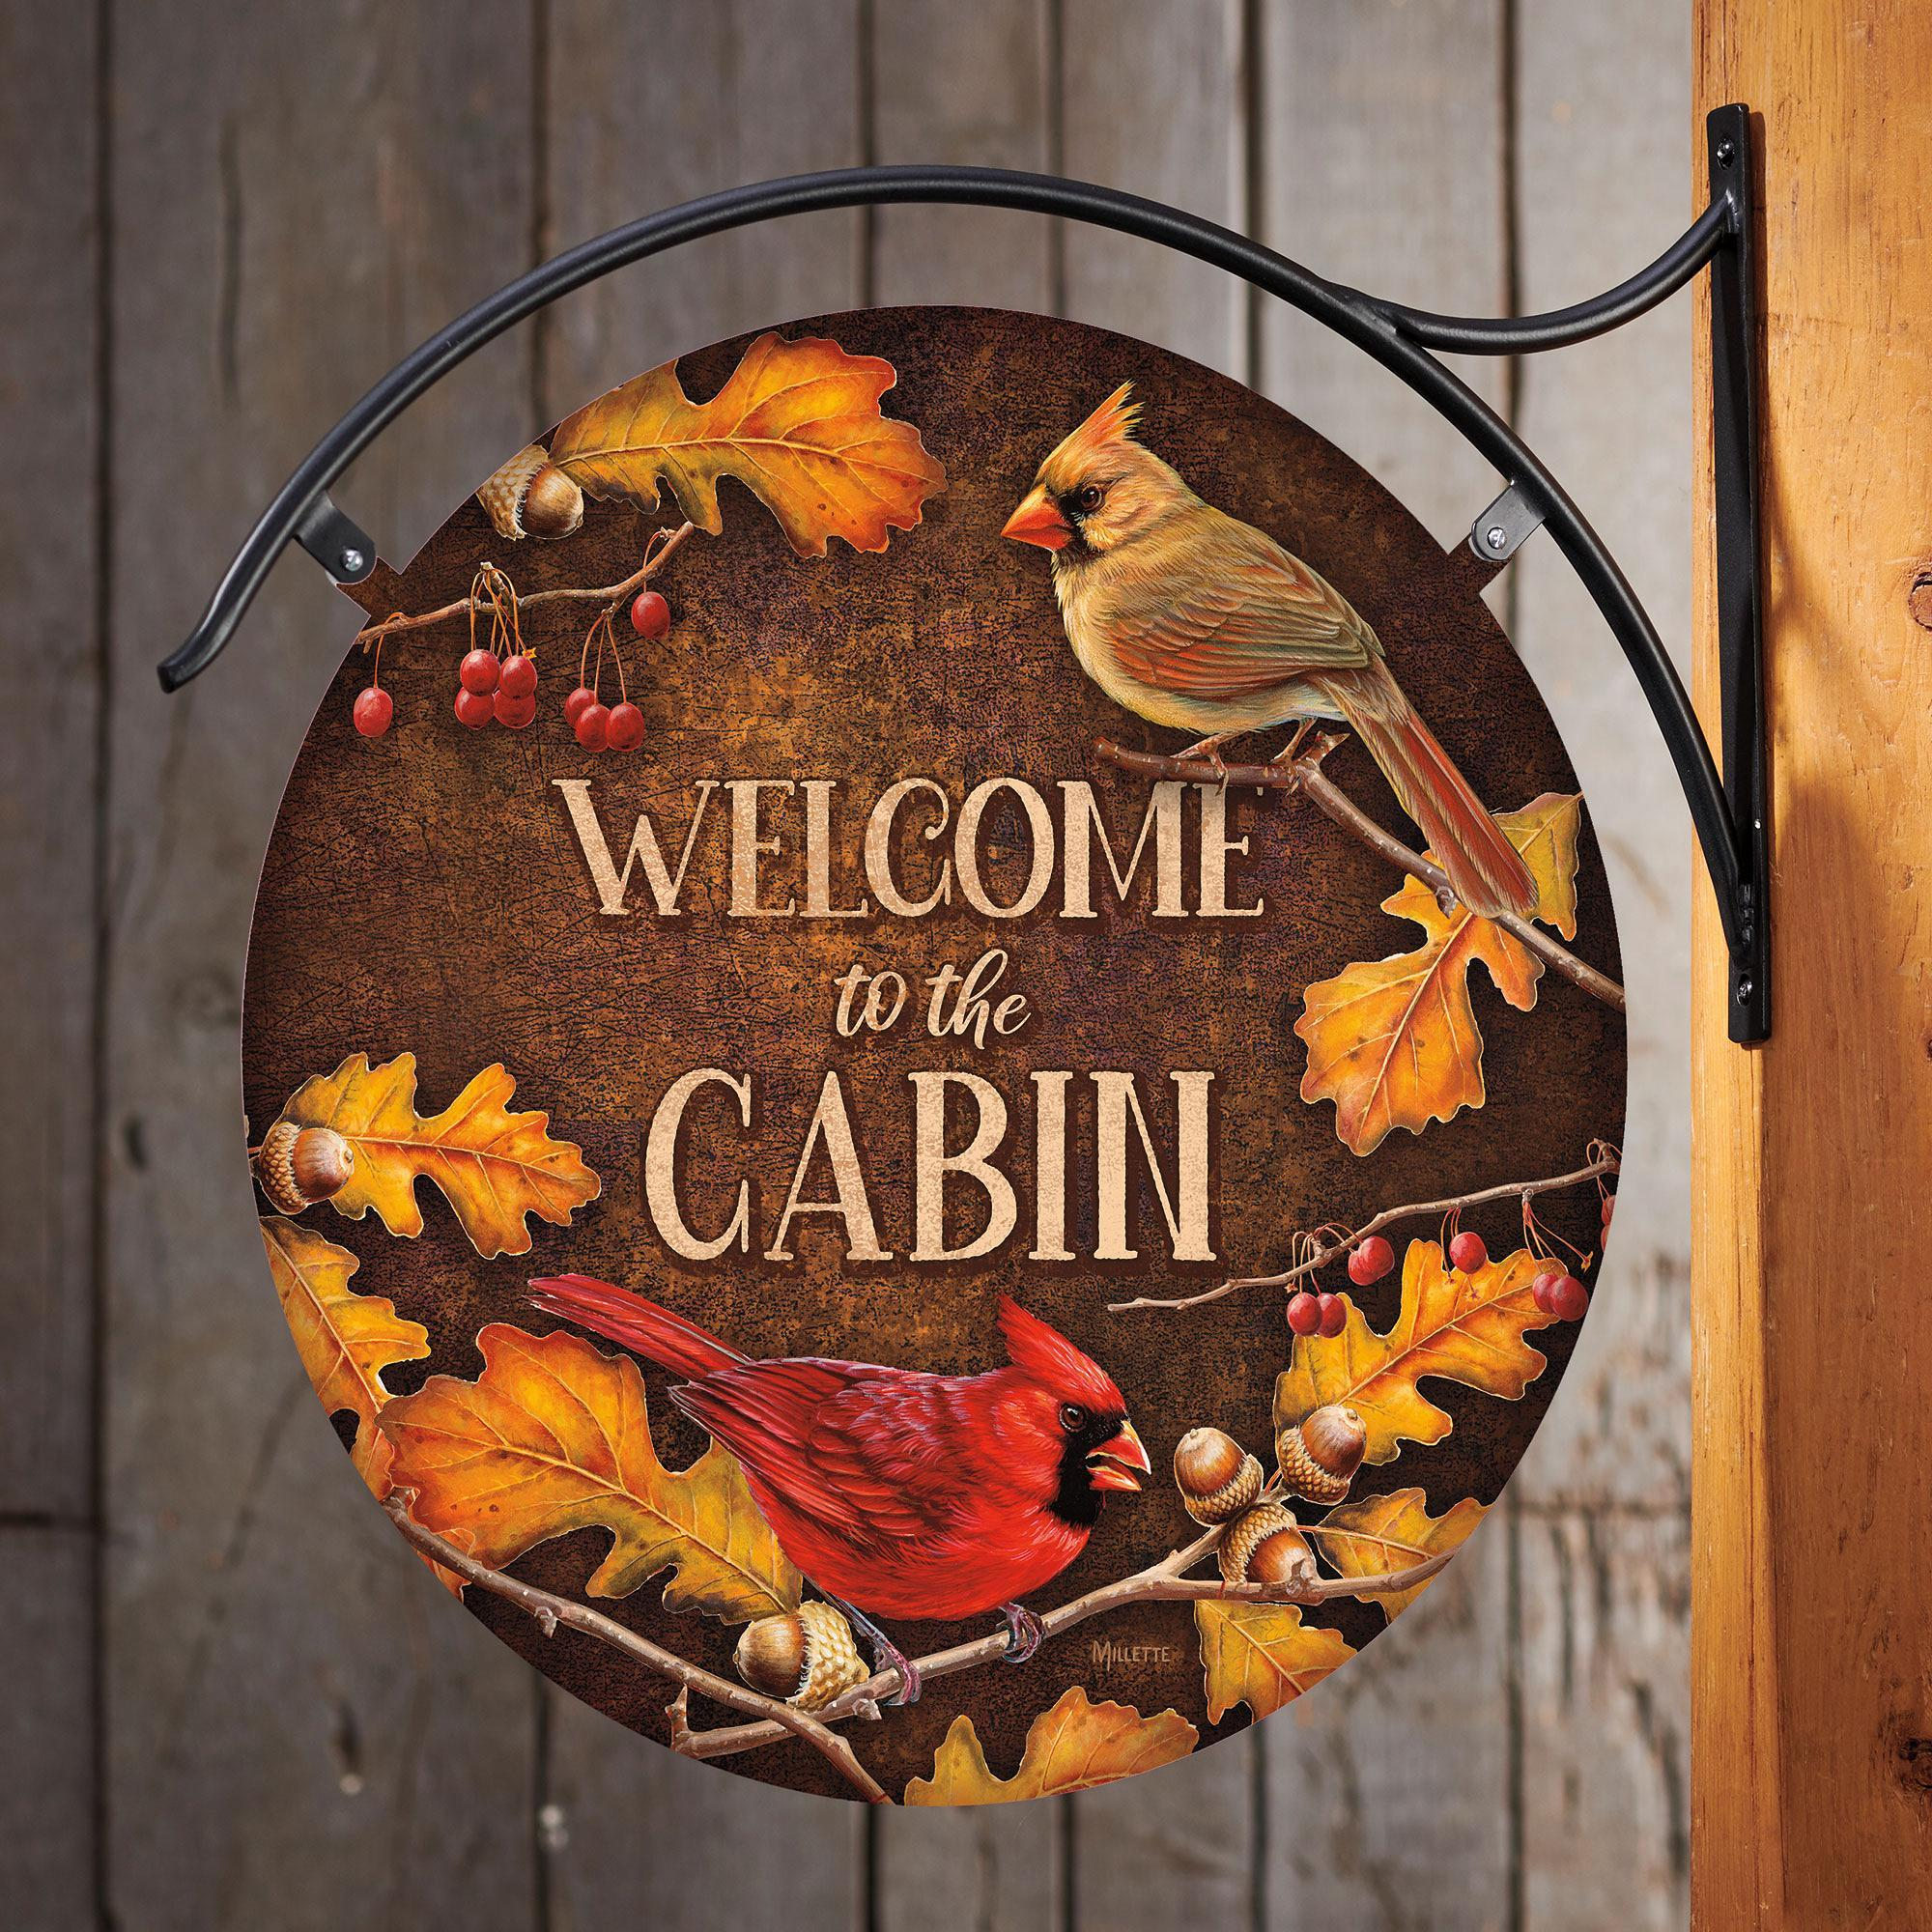 Welcome to the Cabin—Cardinals.